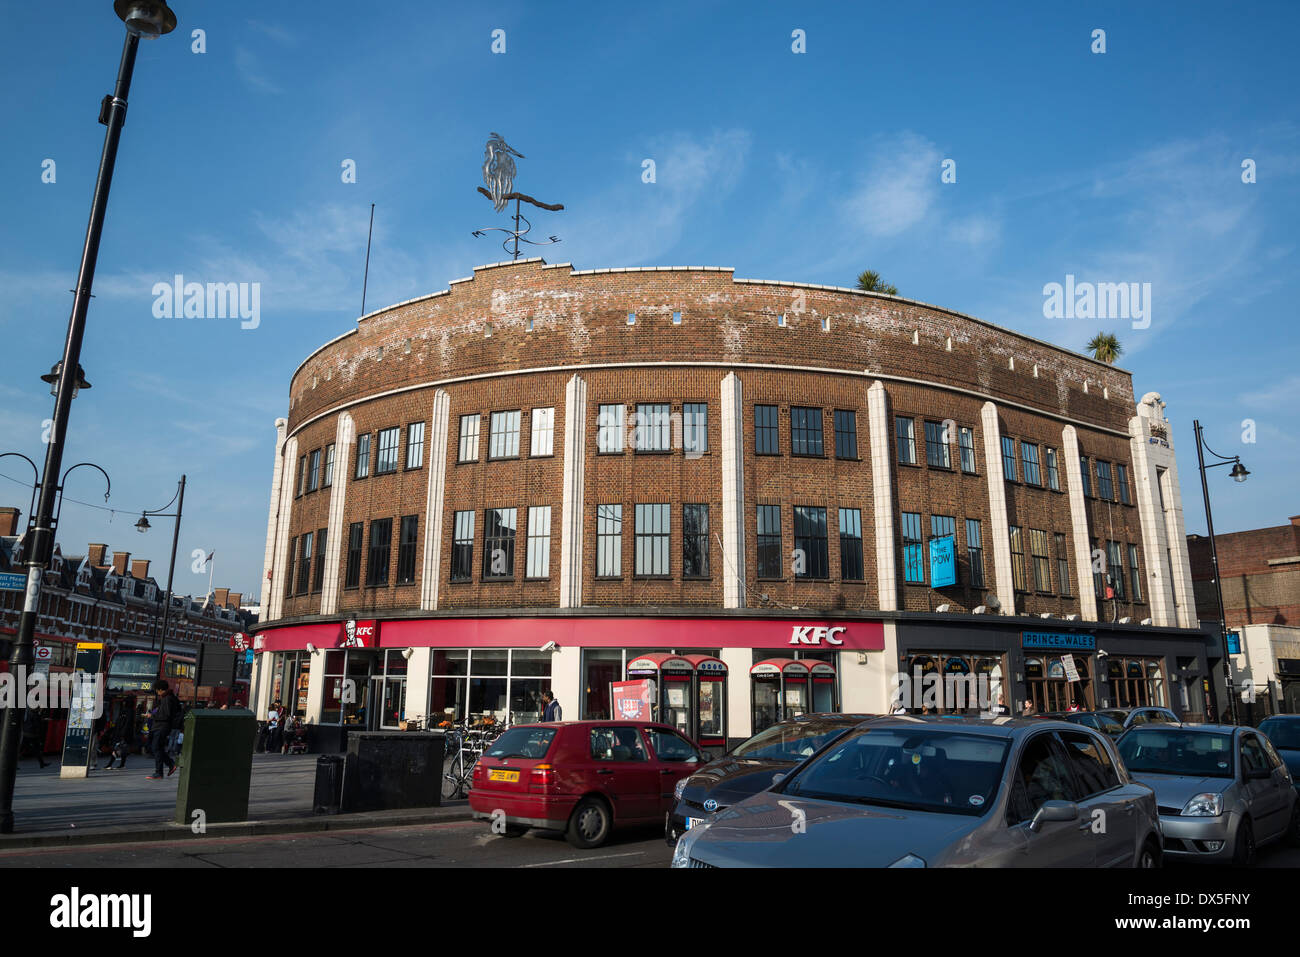 Round building at the corner of Coldharbour Lane and Brixton Road, Brixton, London, UK - Stock Image